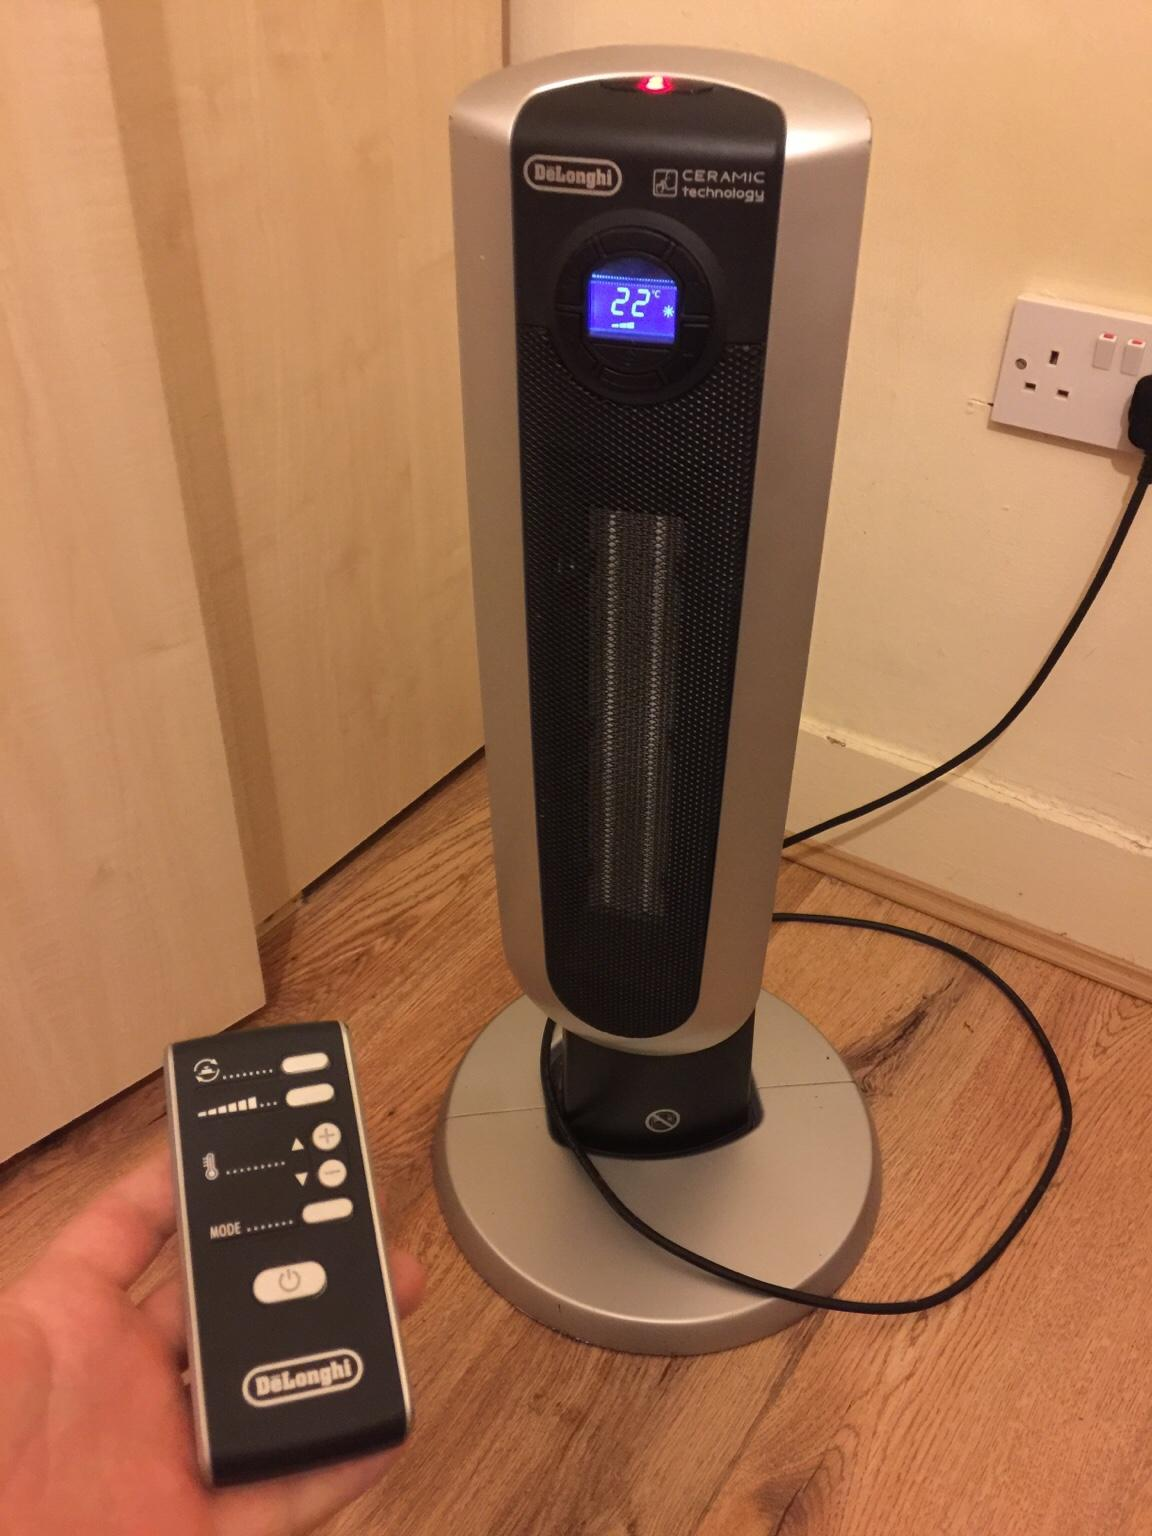 Delonghi 2.2Kw Ceramic Heater with Room